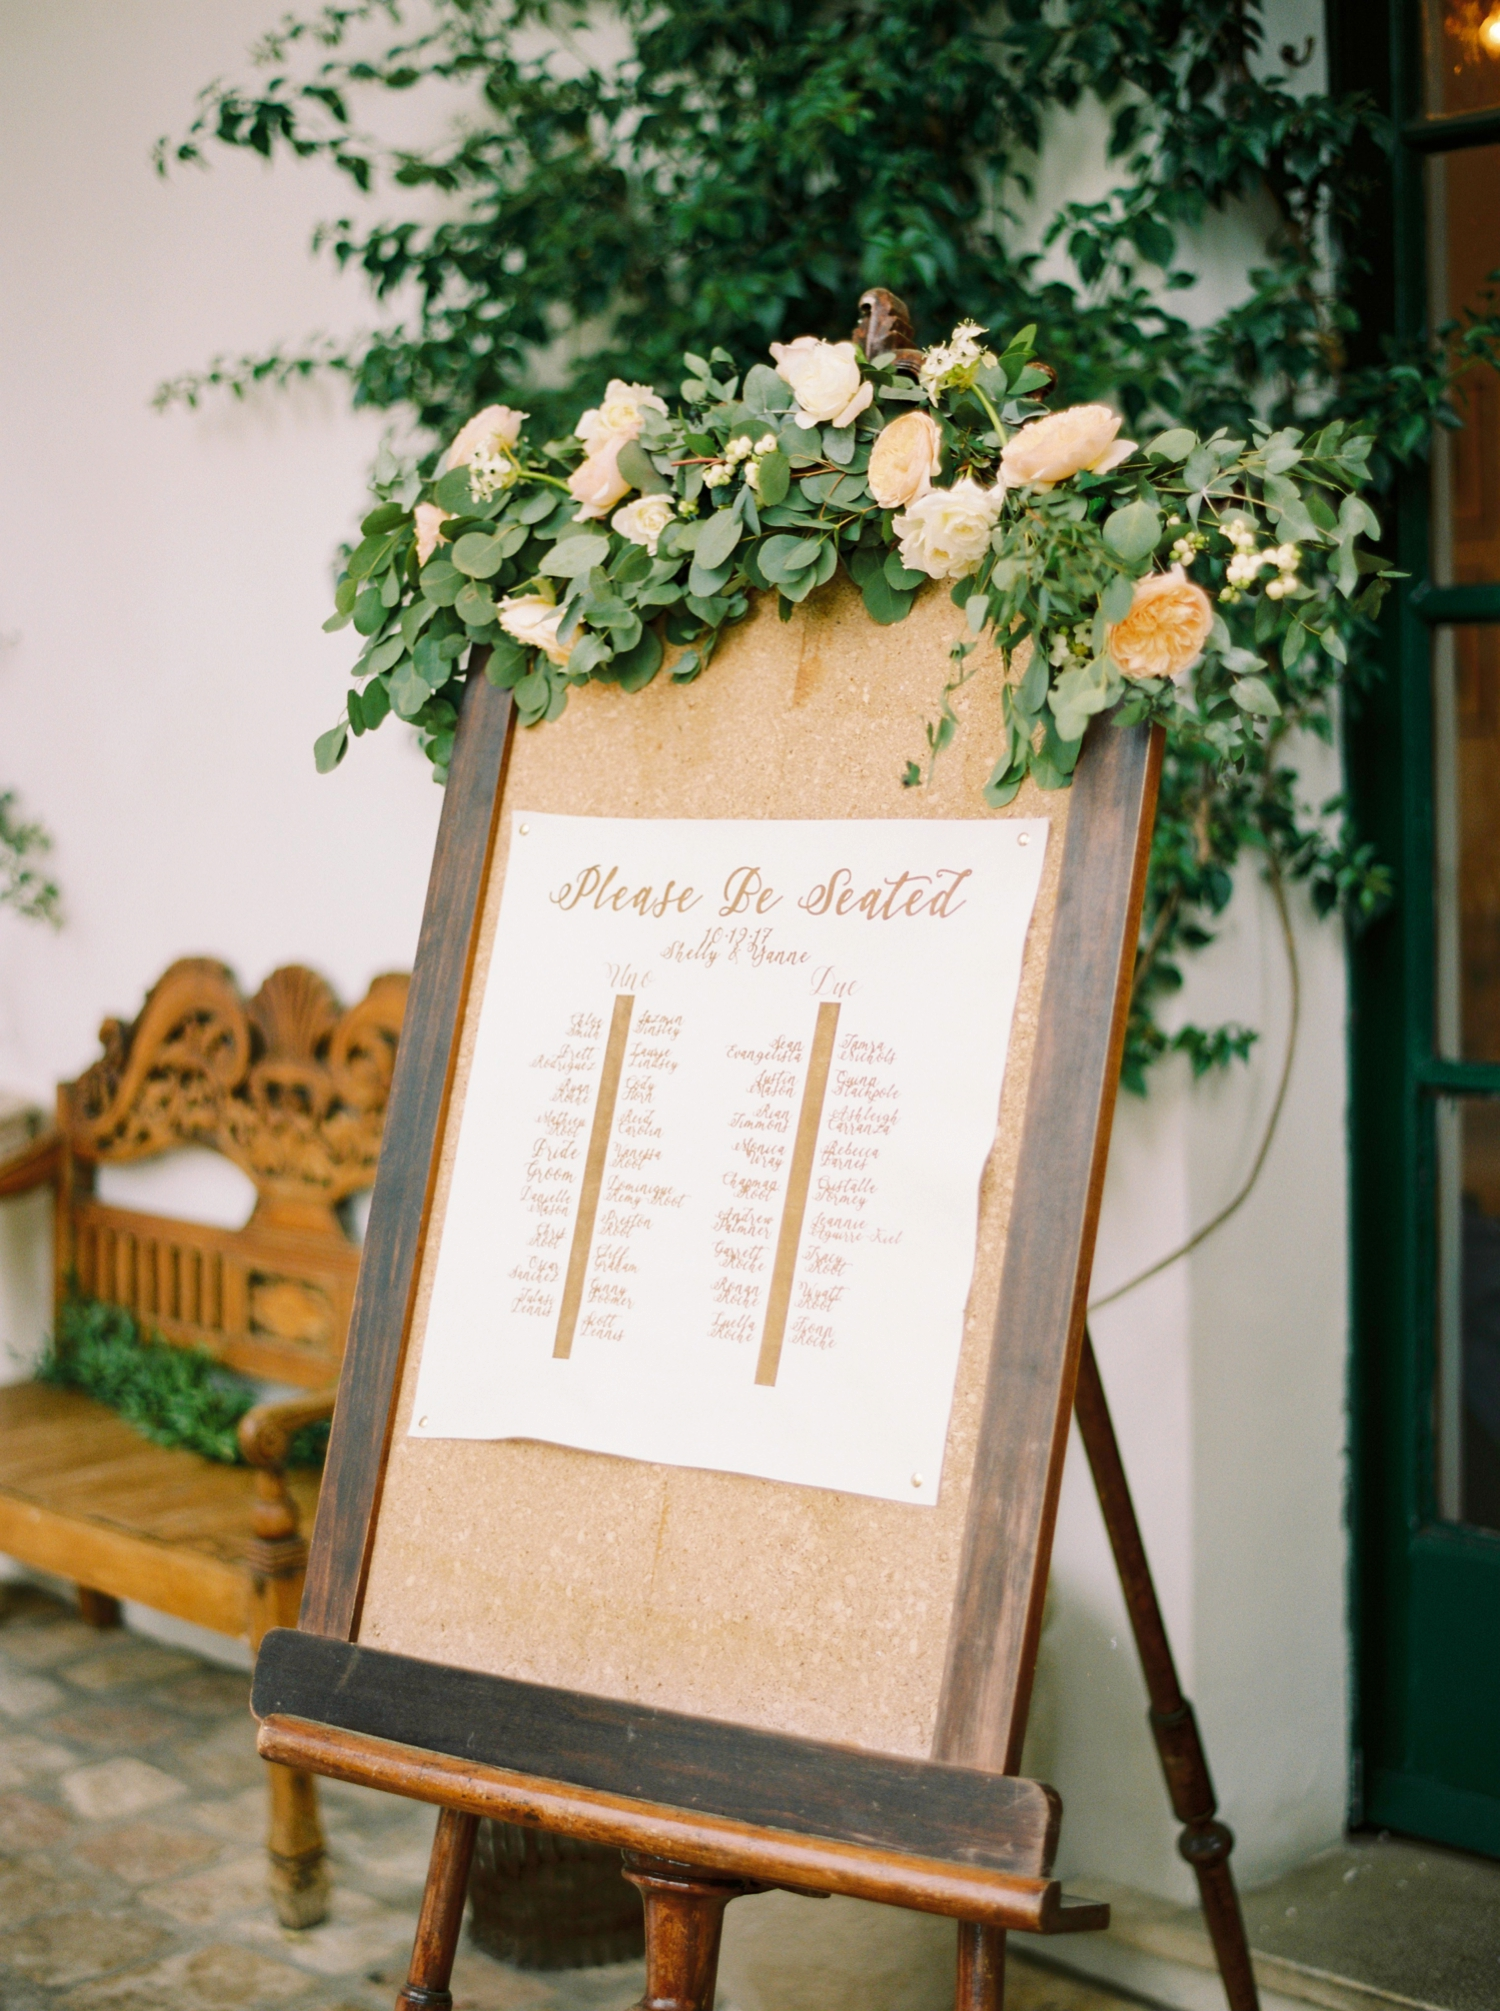 Ravello Italy Amafli Coast destination wedding photographers | english speaking wedding photographer in Italy | Justine Milton Photography | reception decor